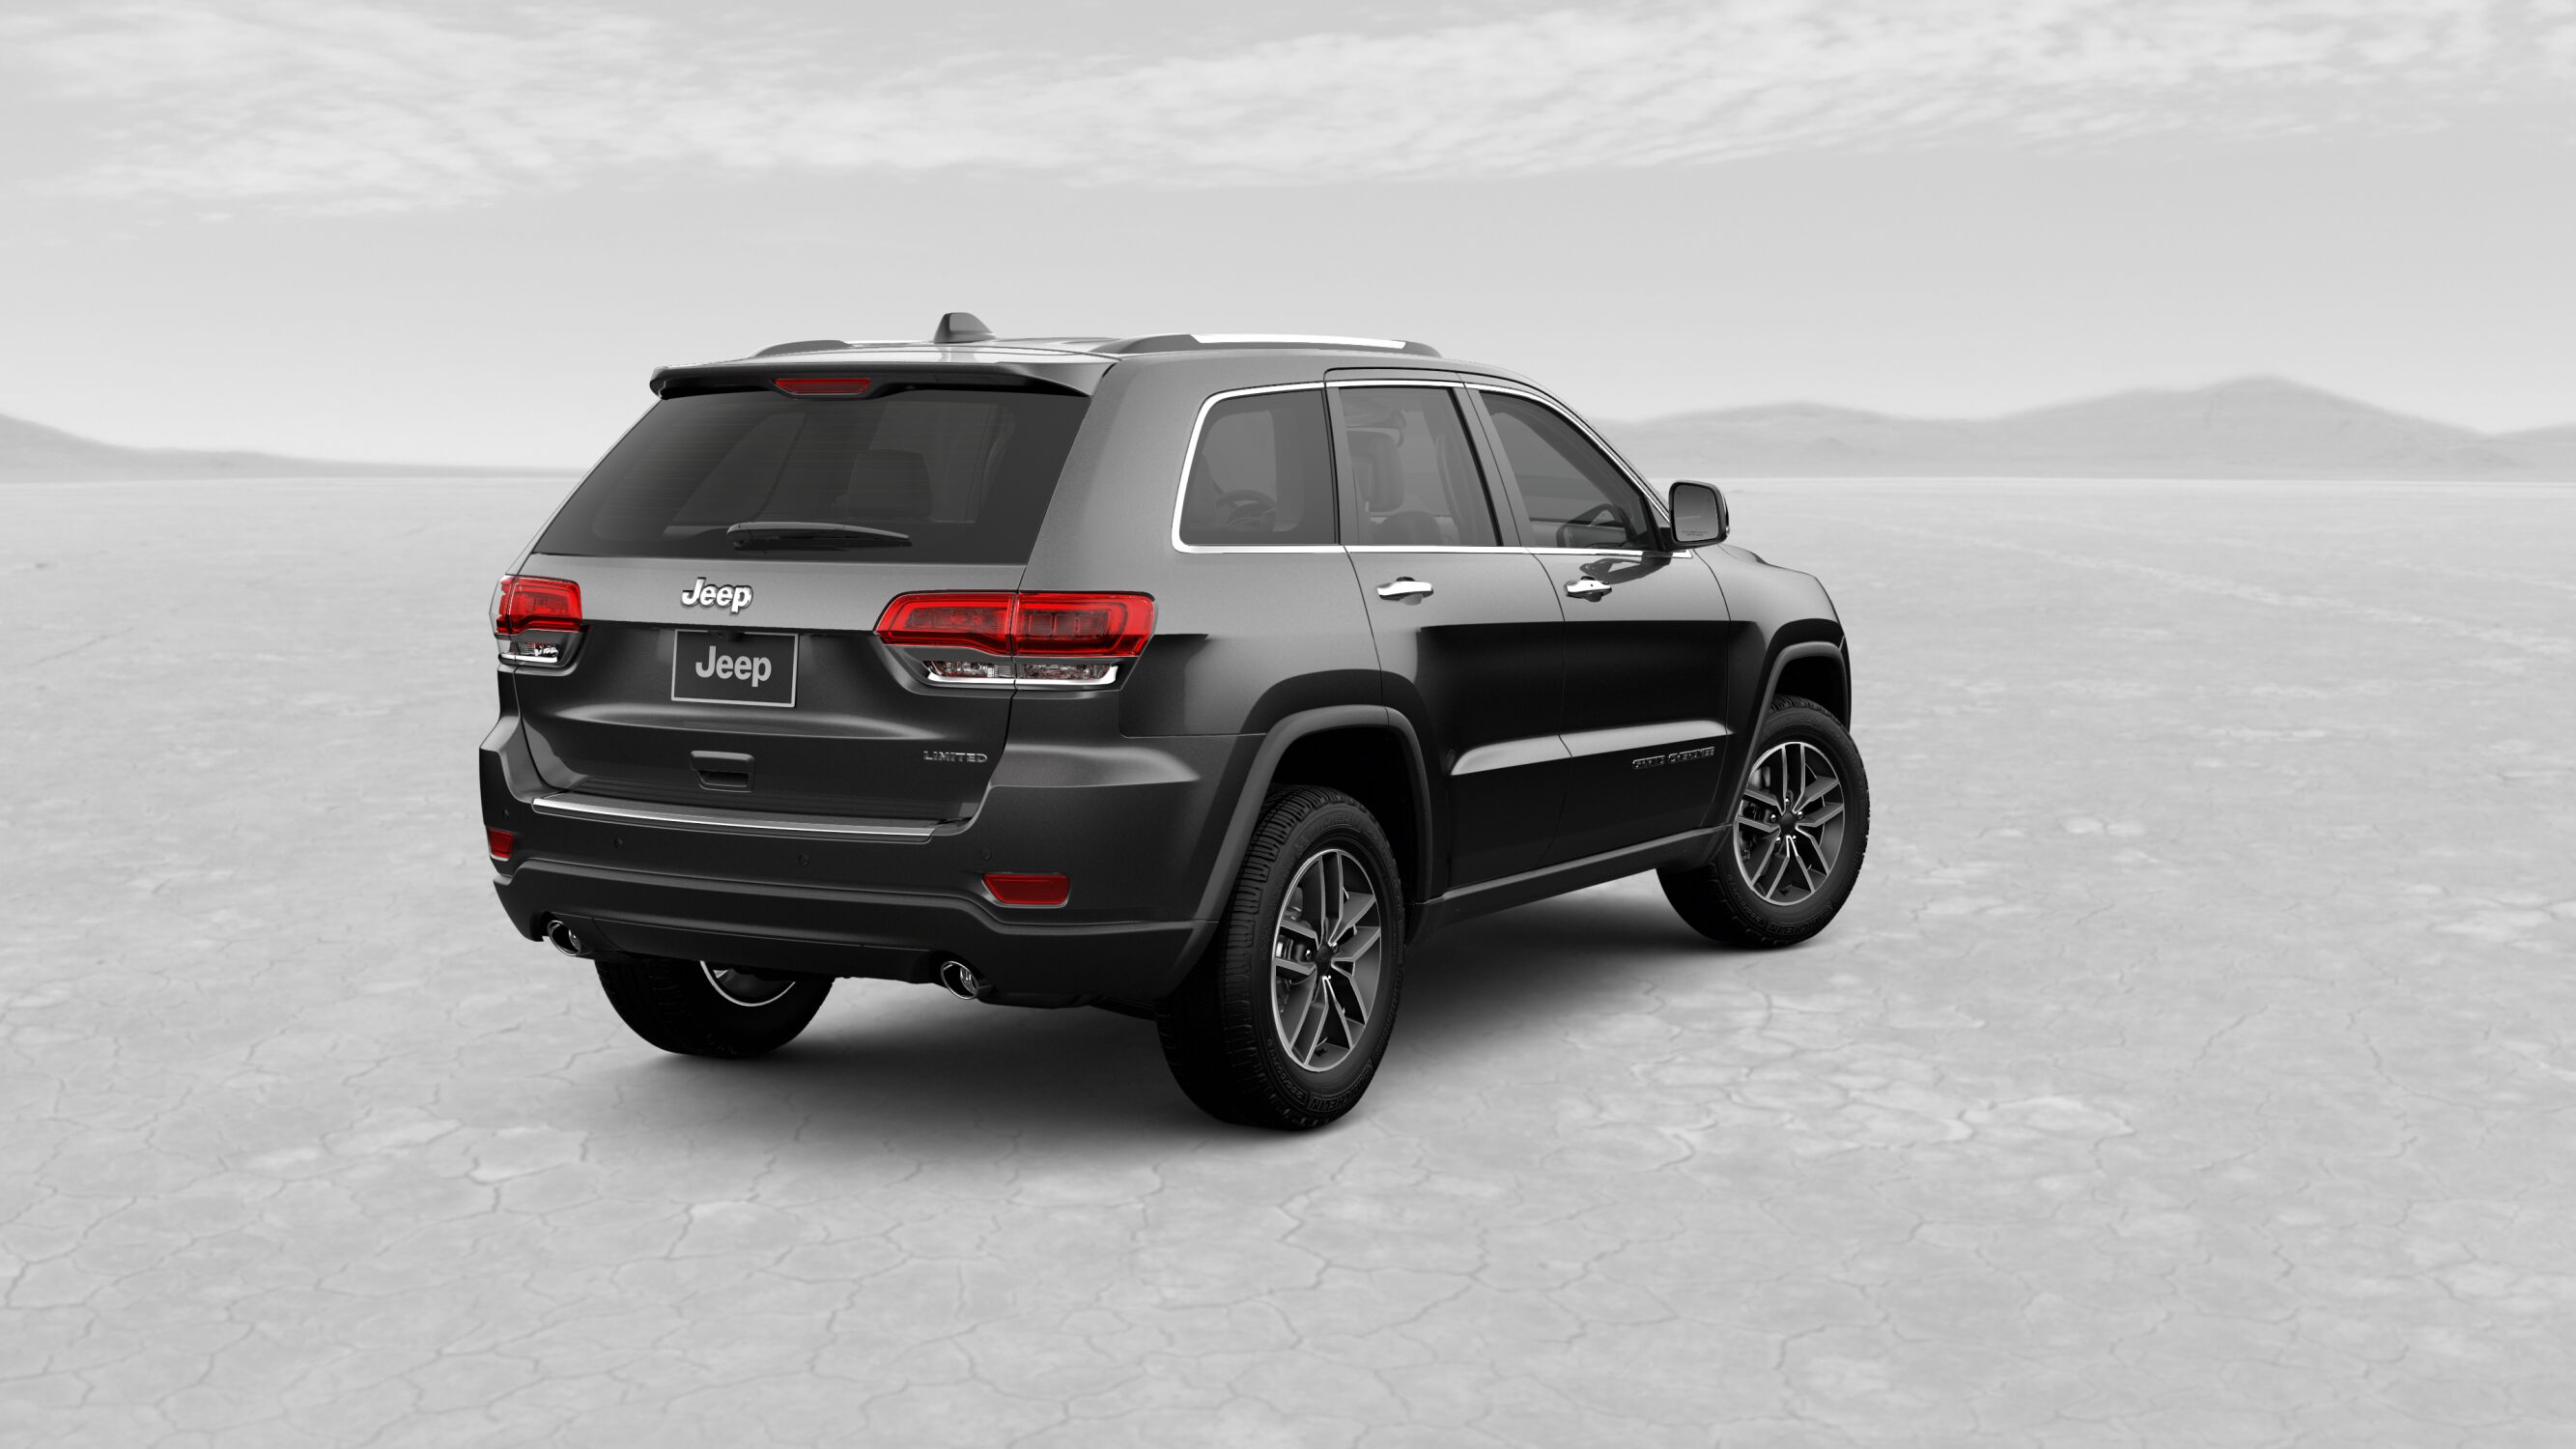 2019 Jeep Grand Cherokee Limited Gray Exterior Rear View